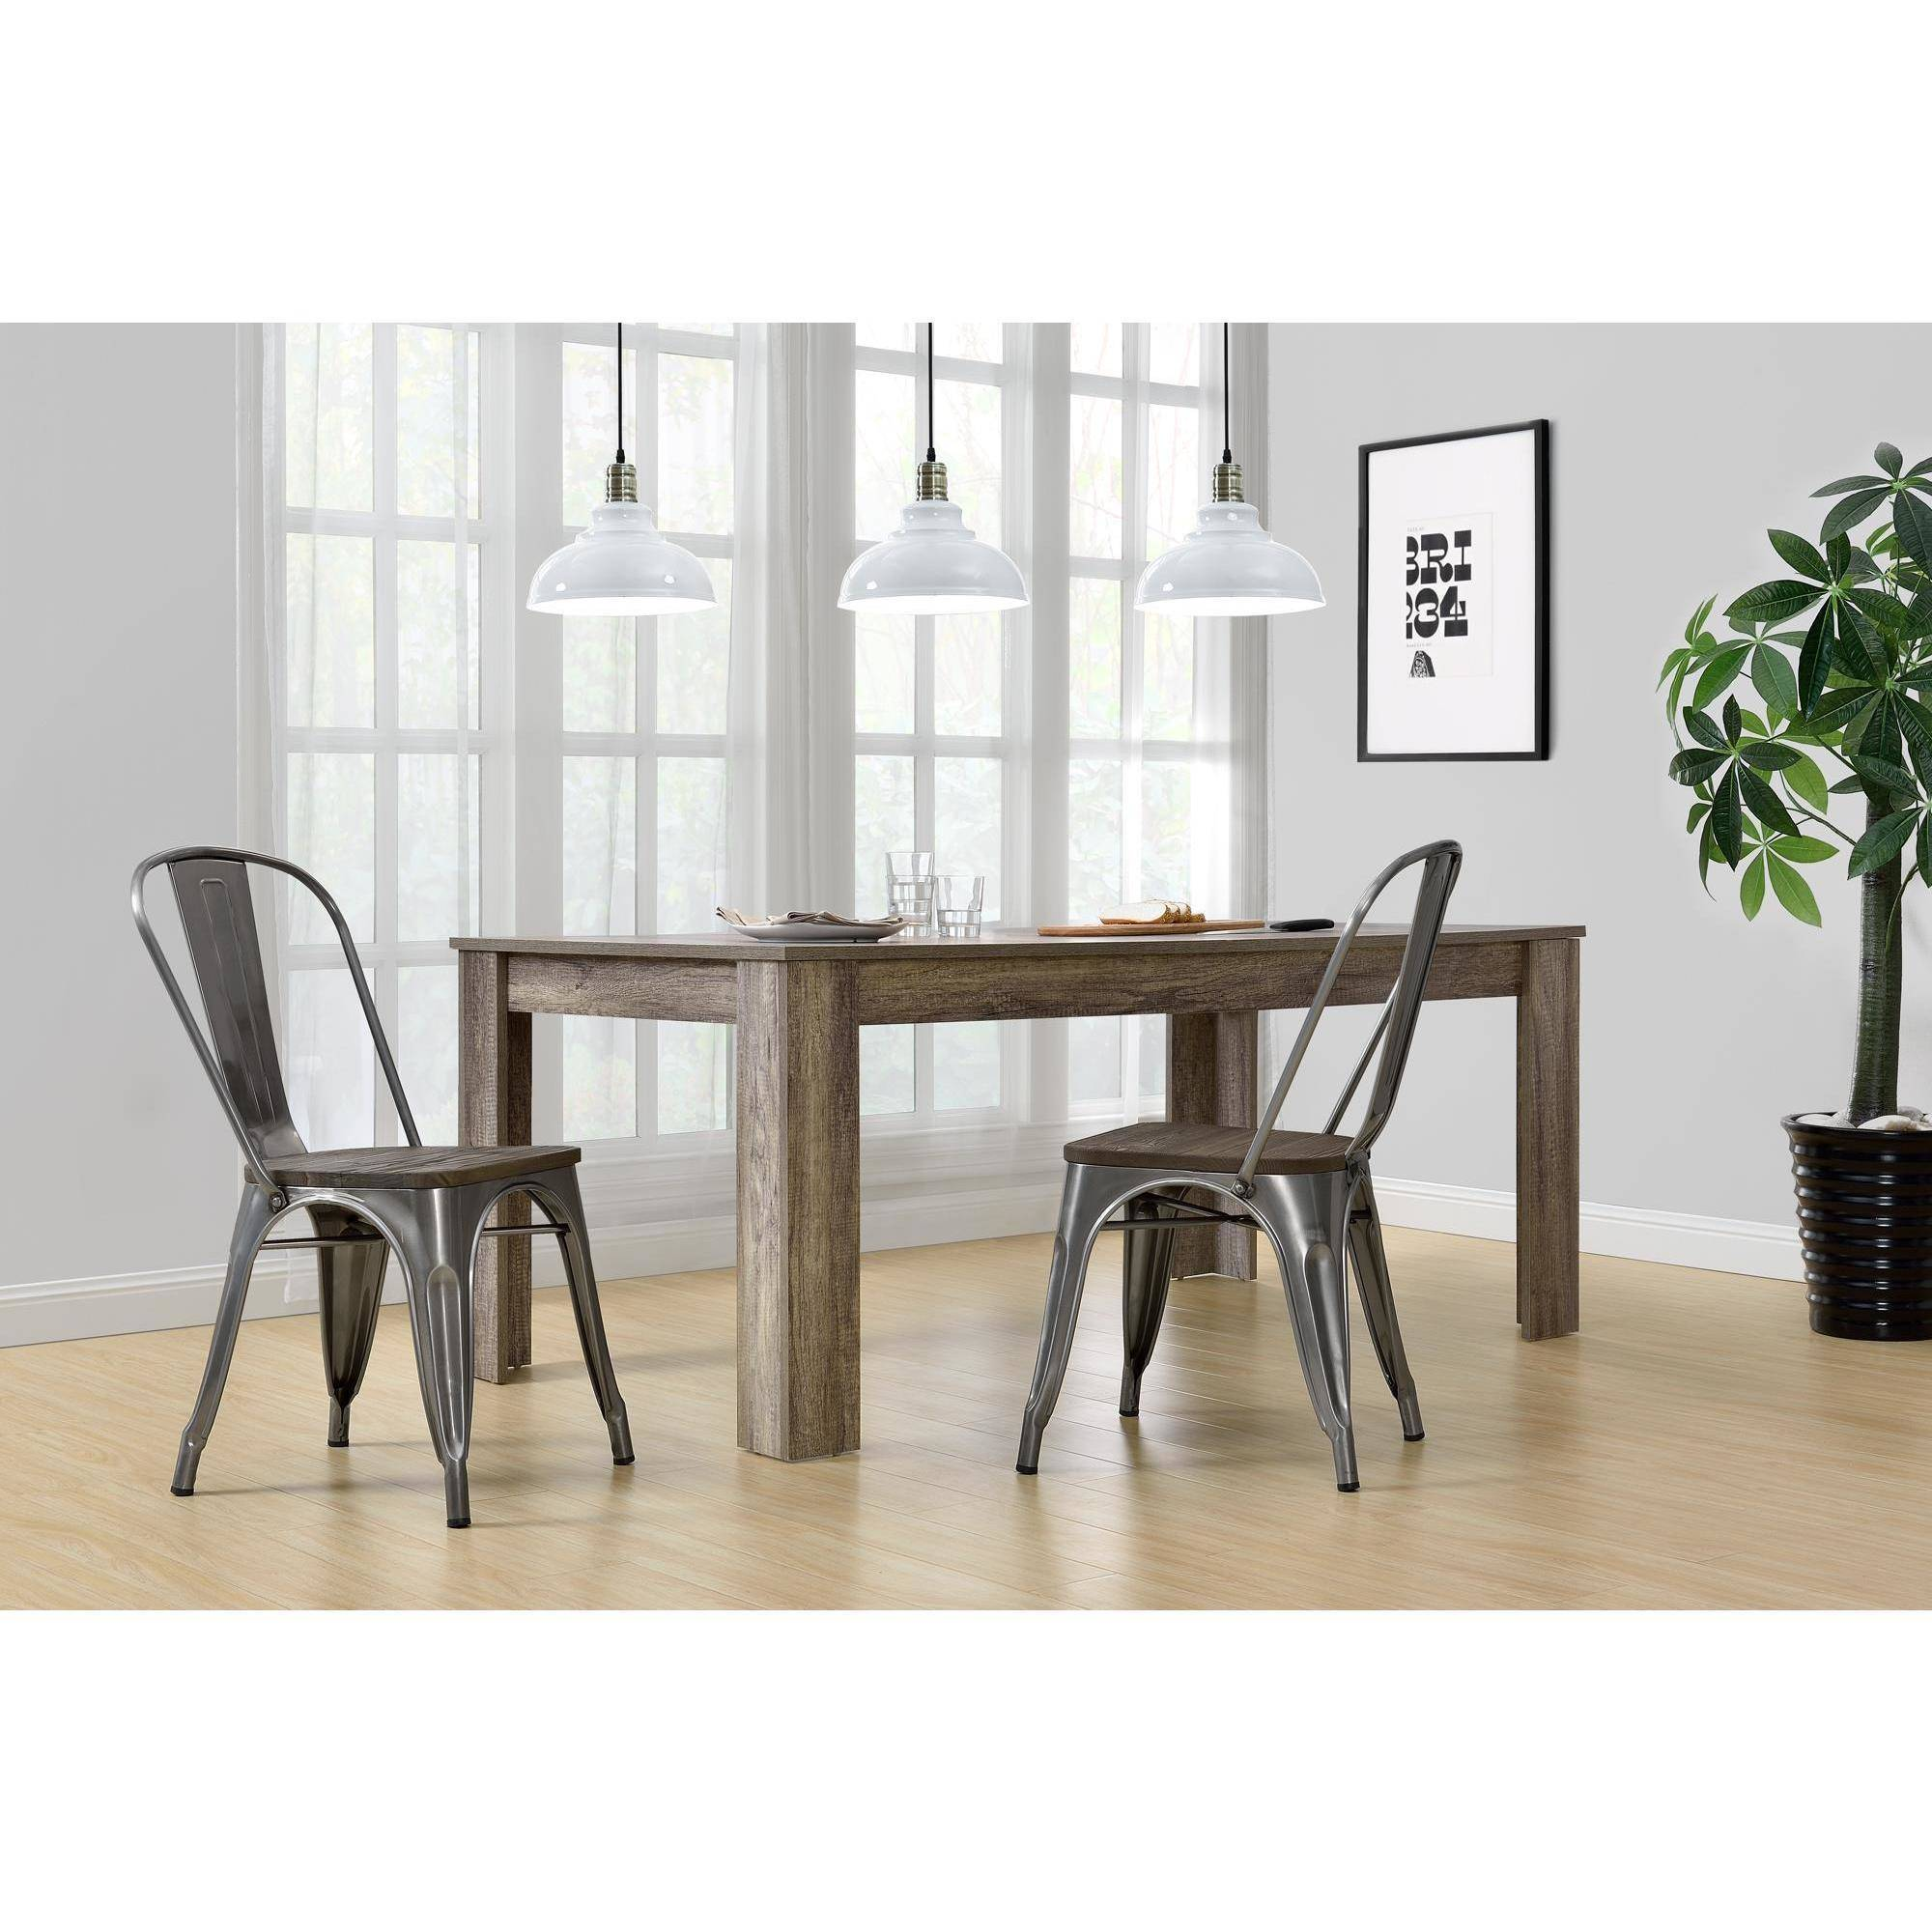 Dorel Home Products Fusion Metal Dining Chair With Wood Seat, Set Of 2,  Multiple